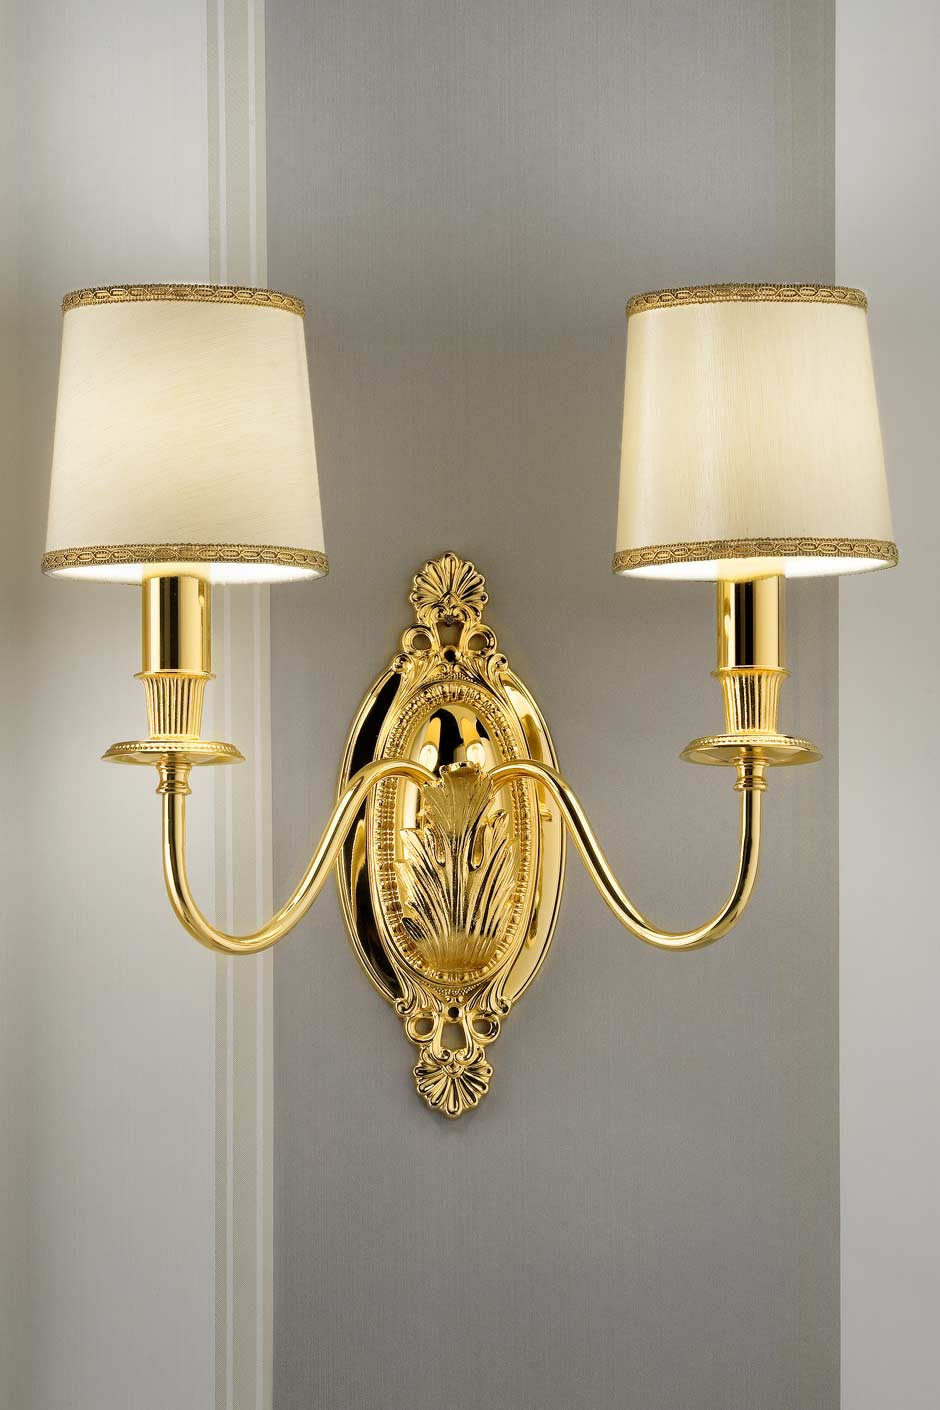 Gold Wall Lampshades : Double wall light in gold-plated bronze with beige silk shades Masiero Murano and crystal ...